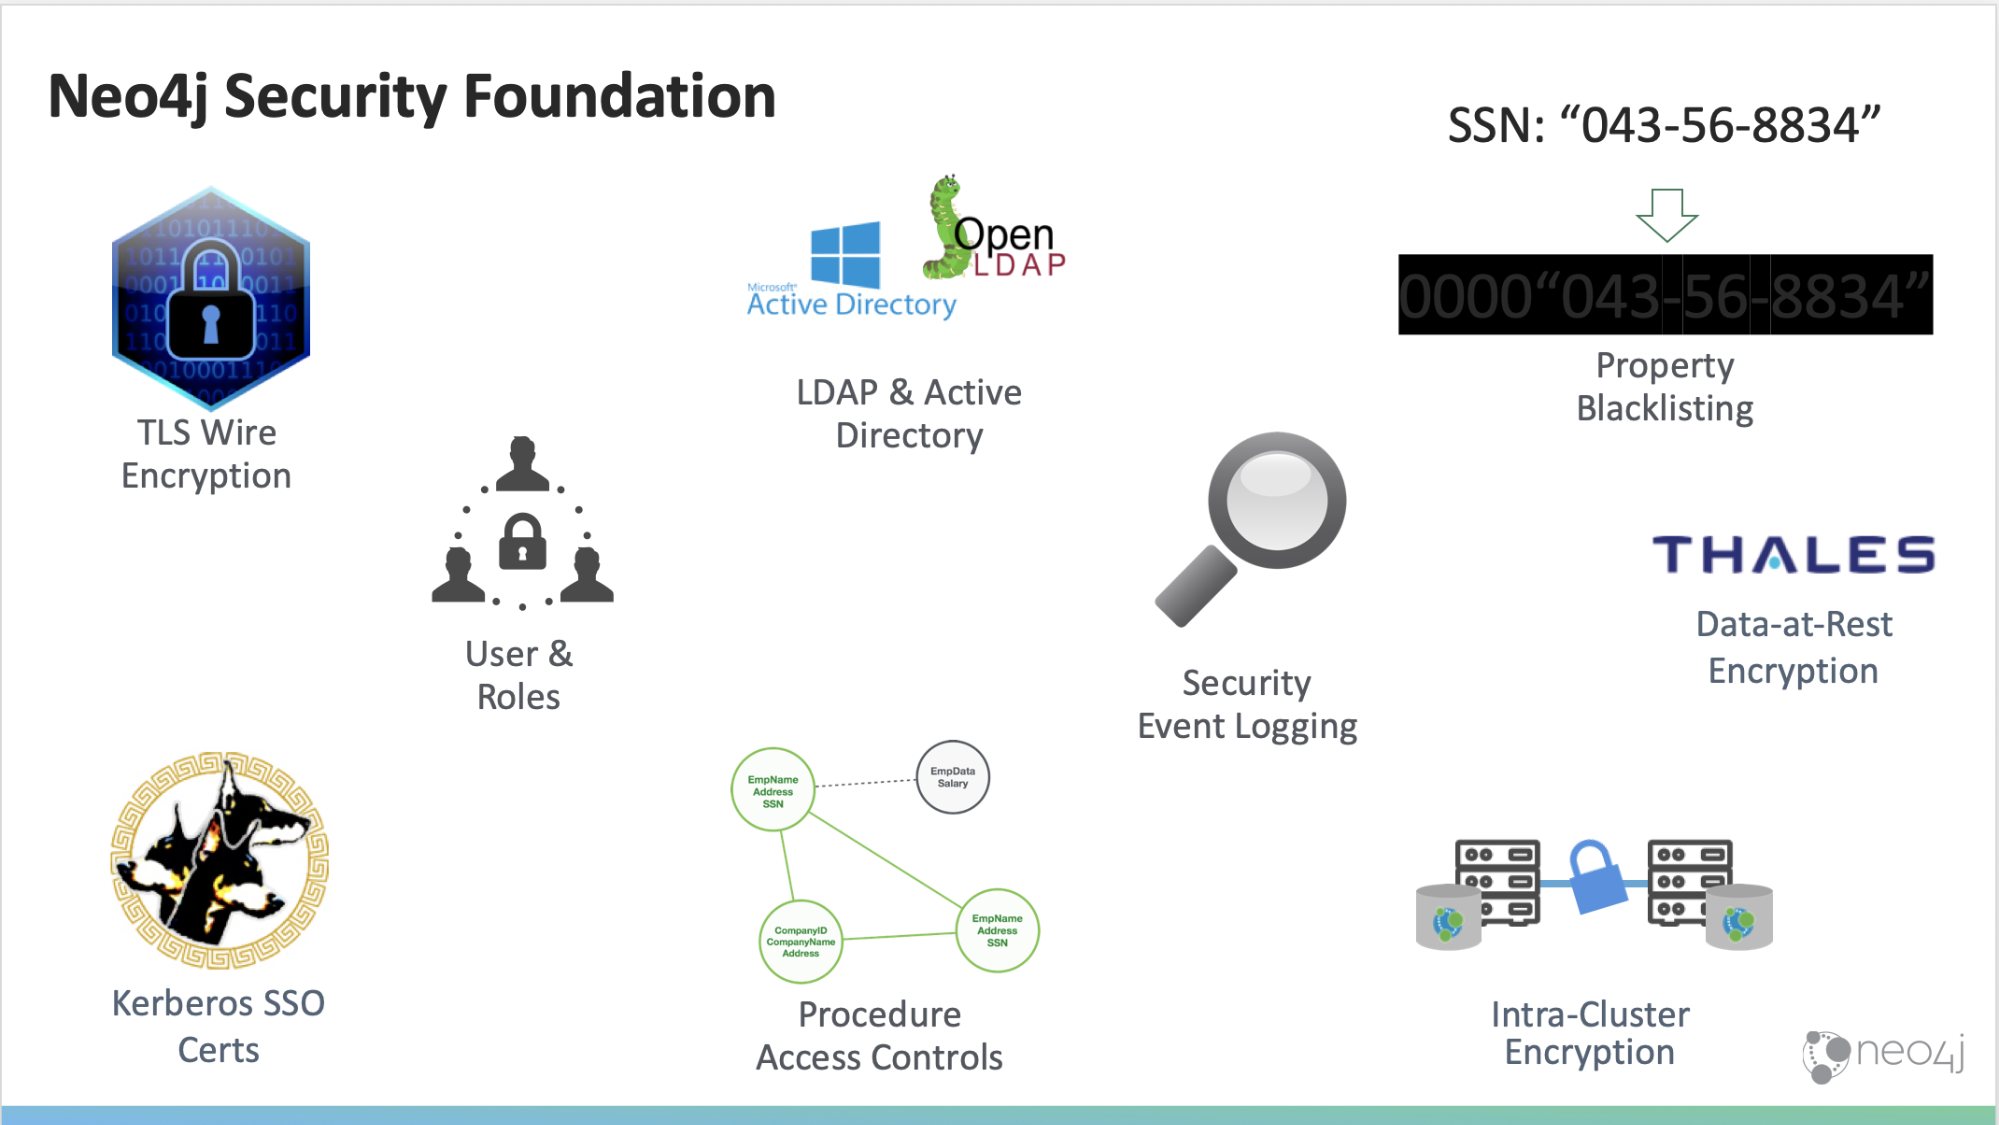 Neo4j Security Foundation